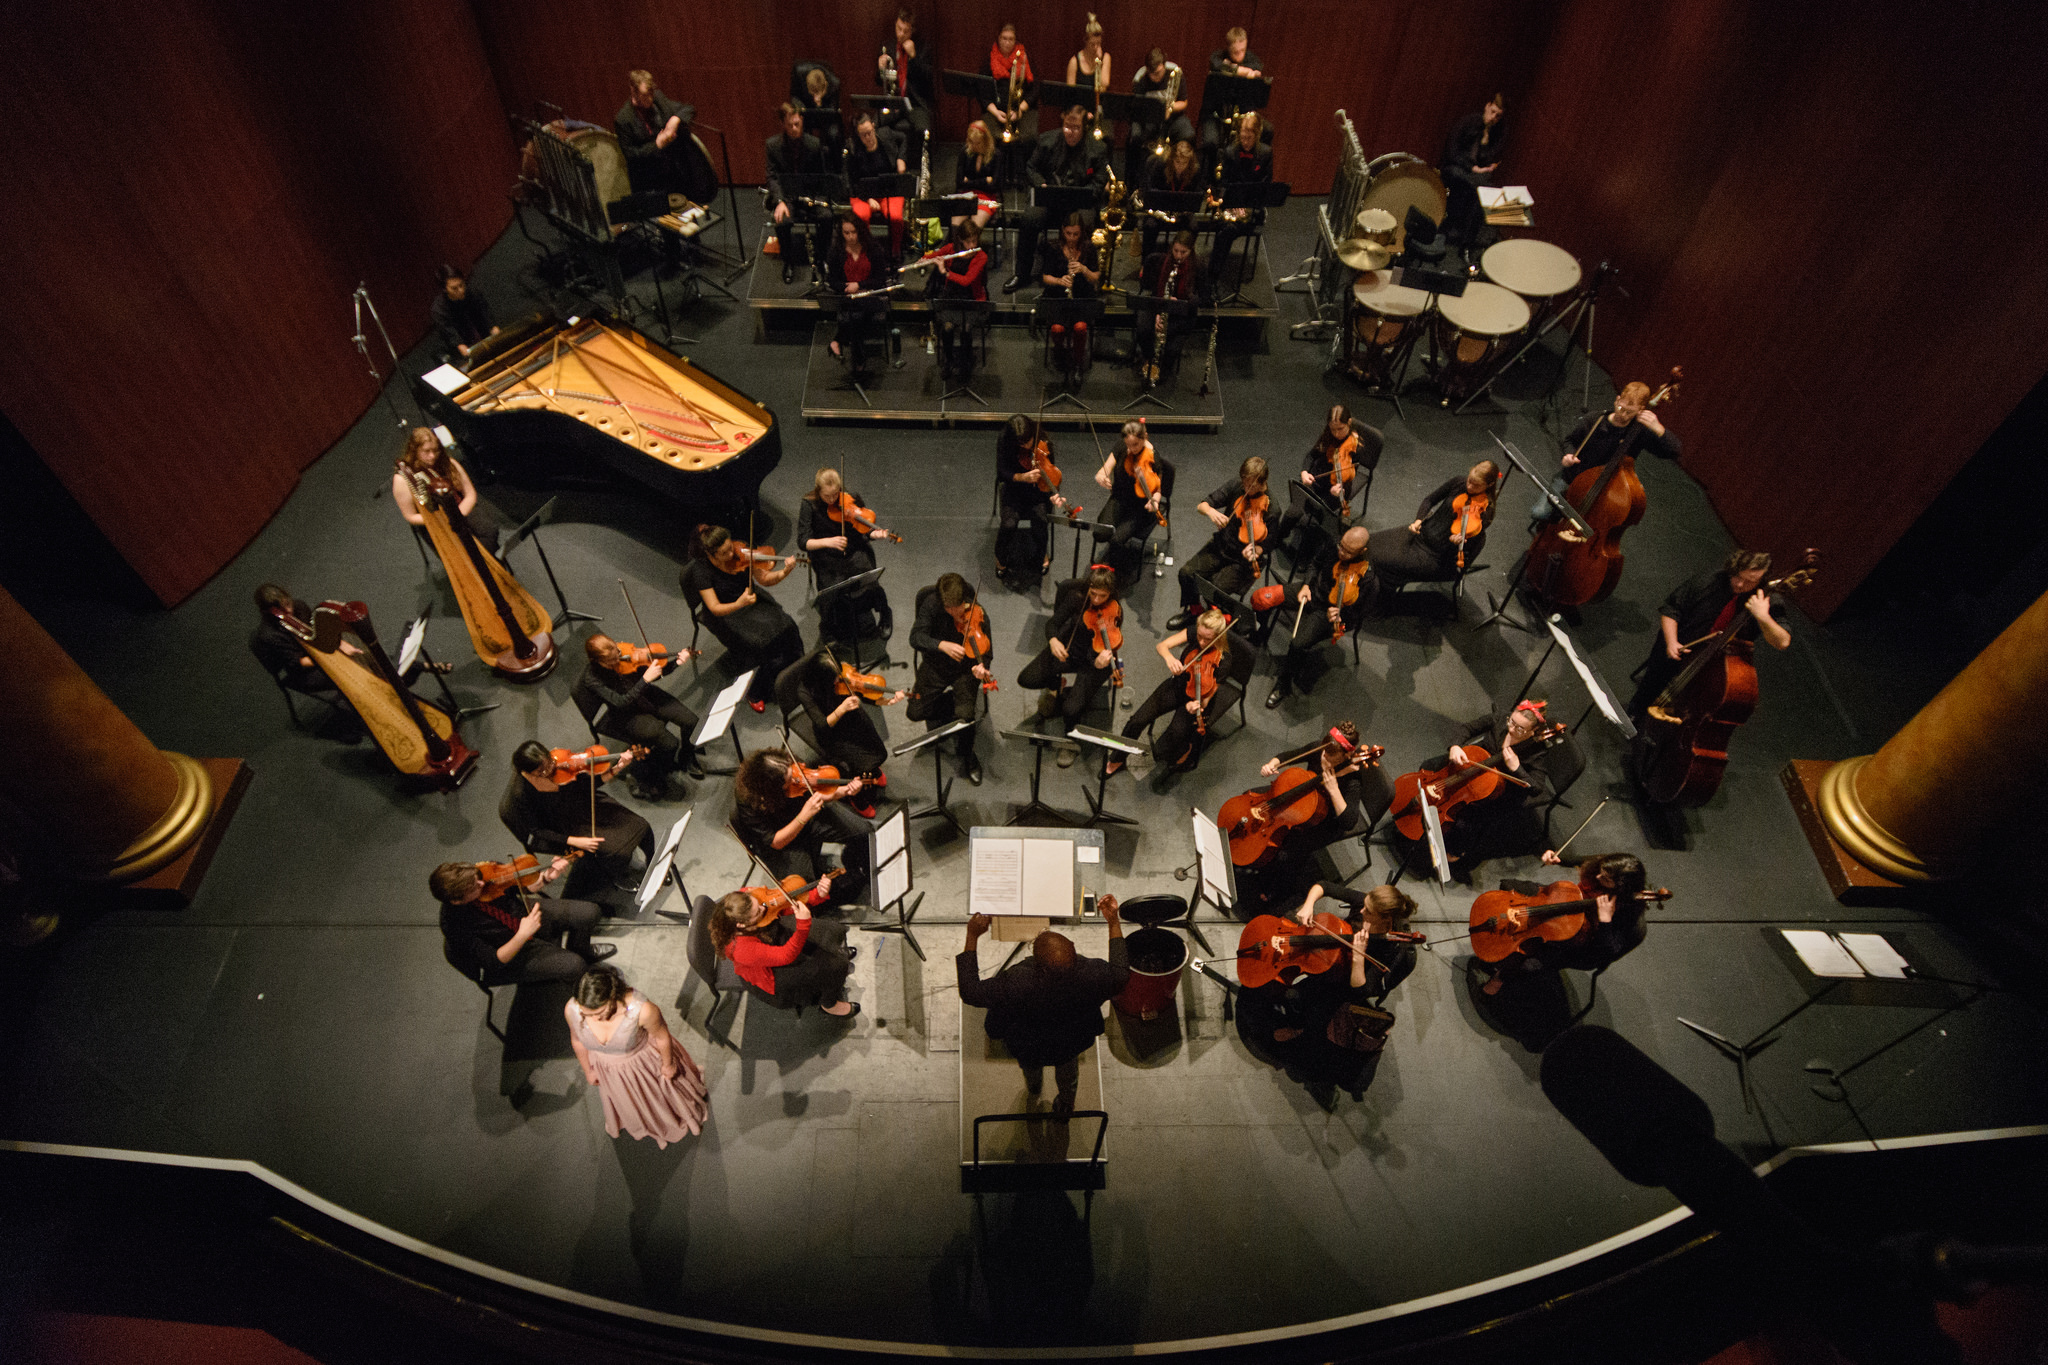 The Gettysburg College Symphony Orchestra performs in November 2016 (Photo courtesy of Gettysburg College)